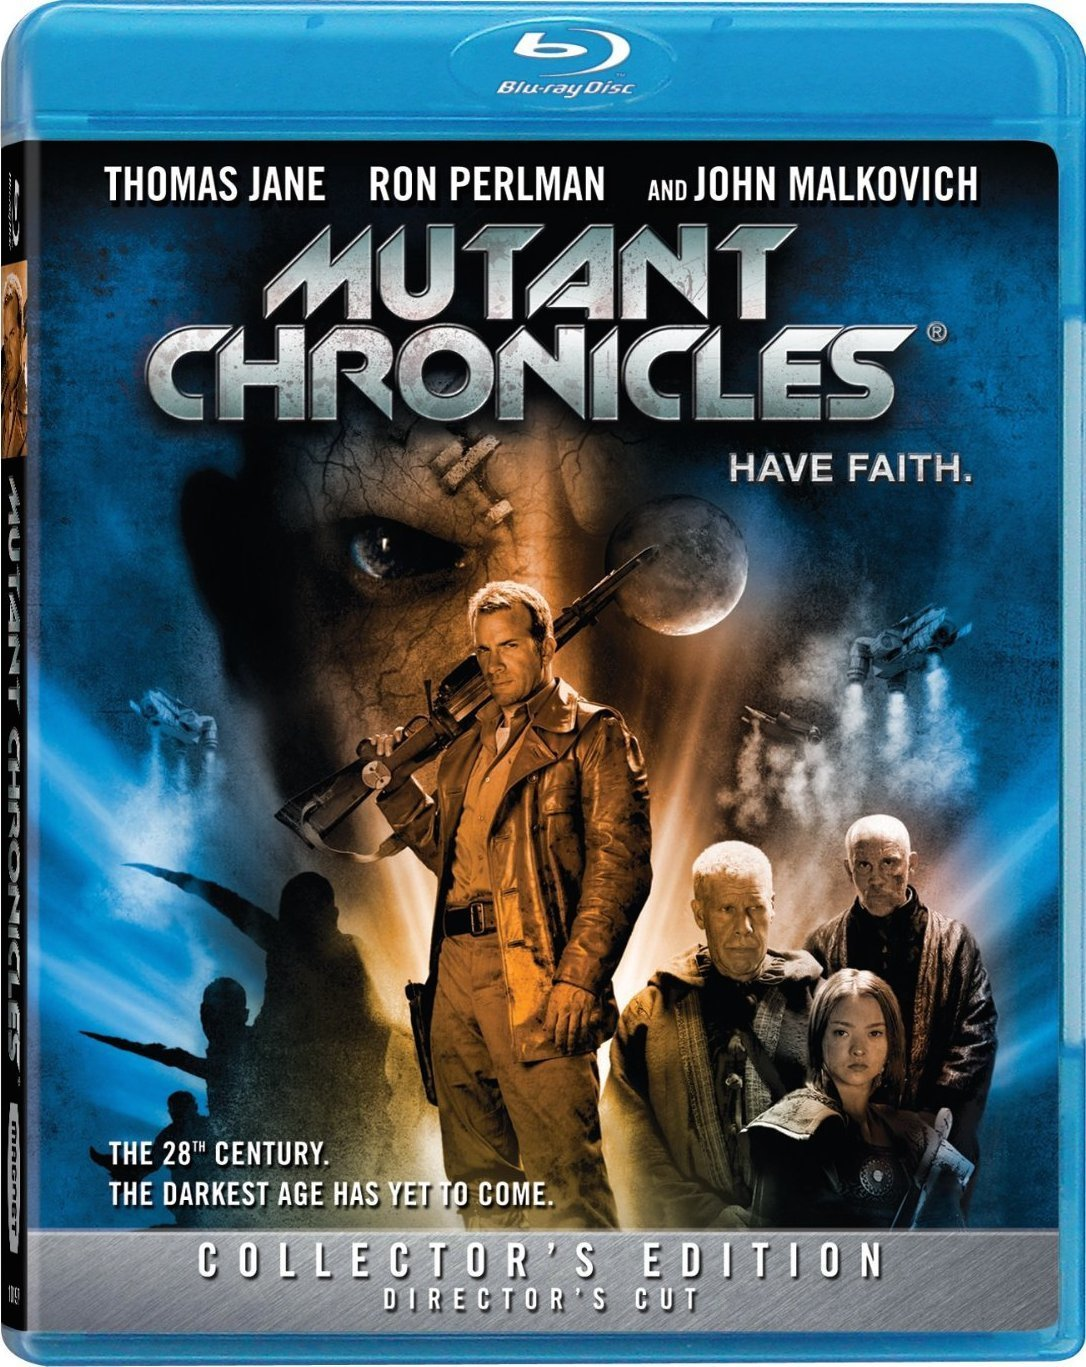 The mutant chronicles (2008) review | sci-fi movie page.